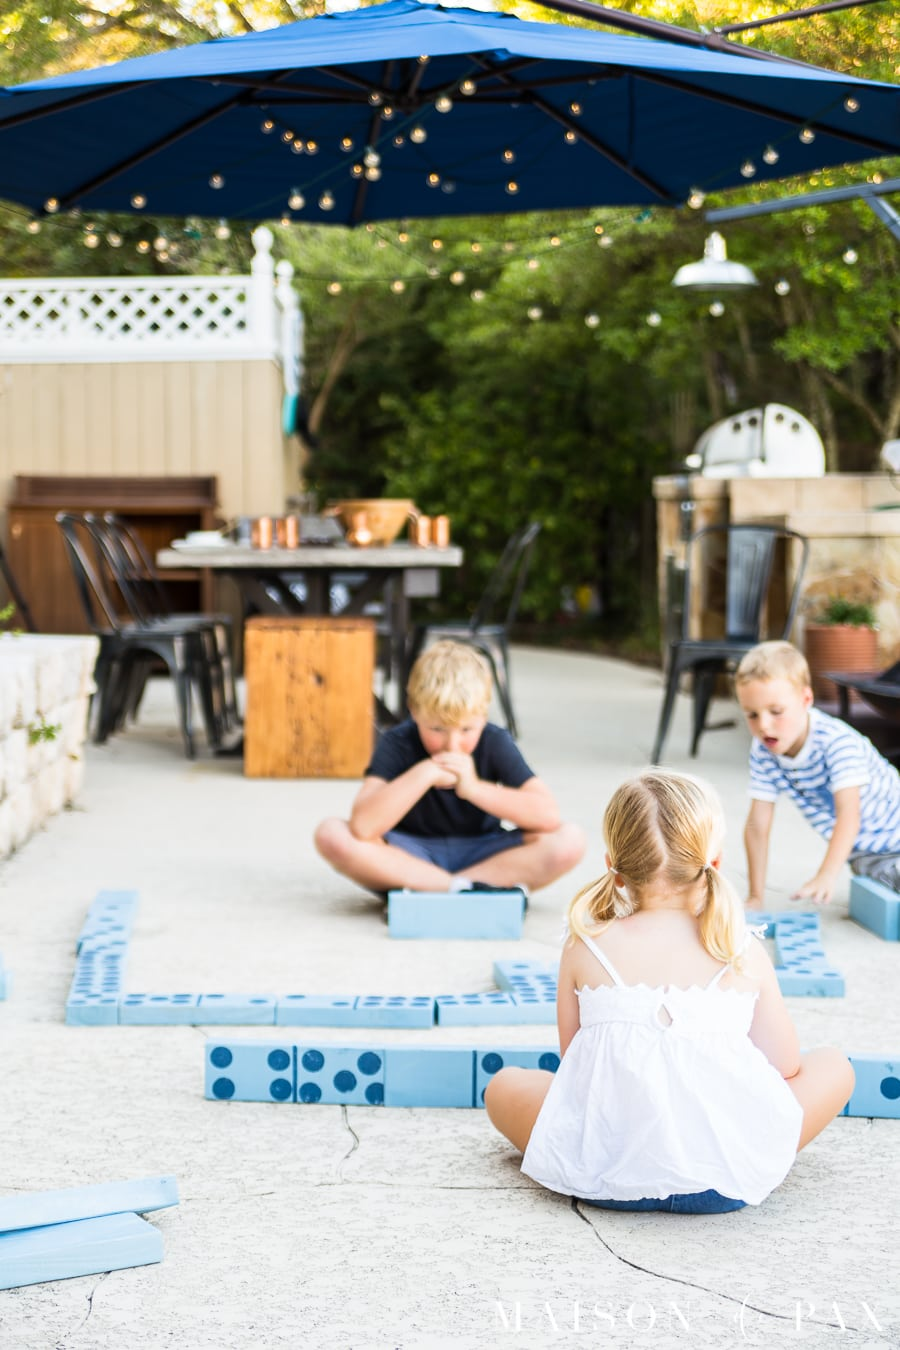 Make giant dominoes and other yard games with your kids: find this and other family projects plus tips for completing project with kids! #familyfun #familyproject #outdoorgames #kidfriendlyproject #diyproject